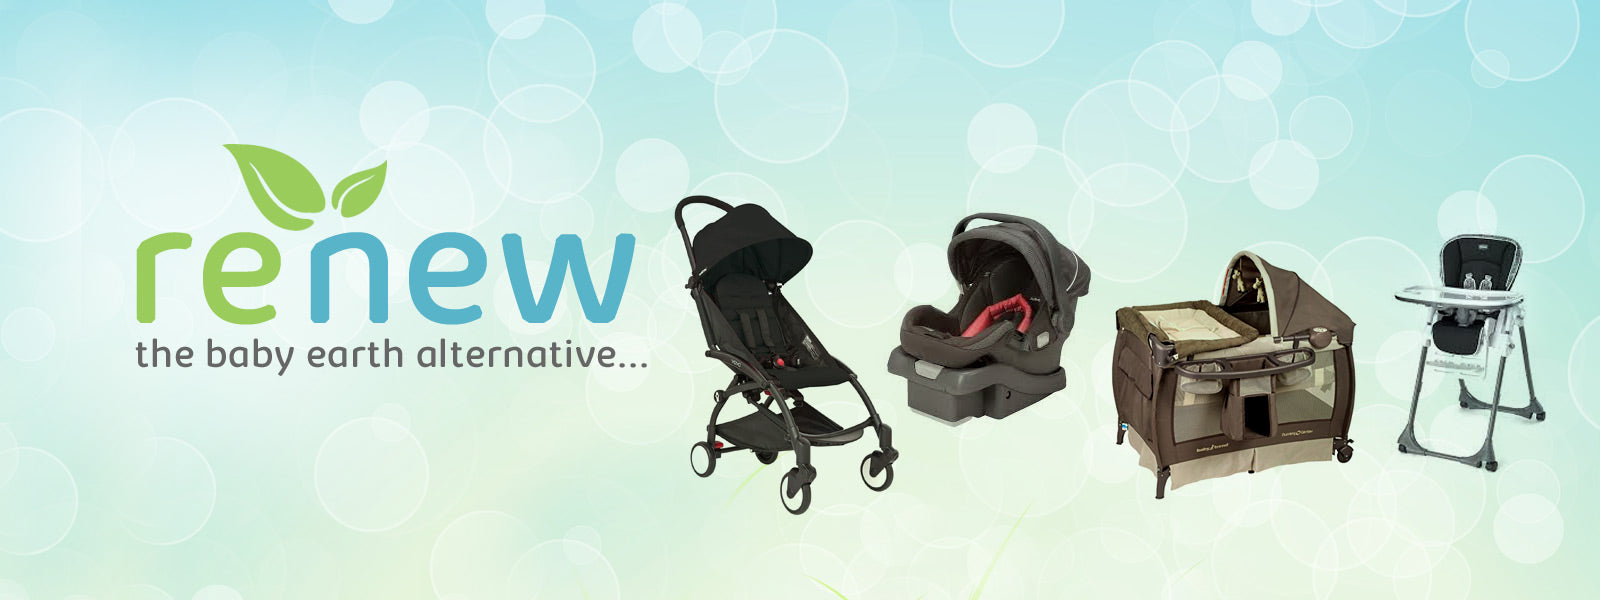 Renew - Car Seat Recycling